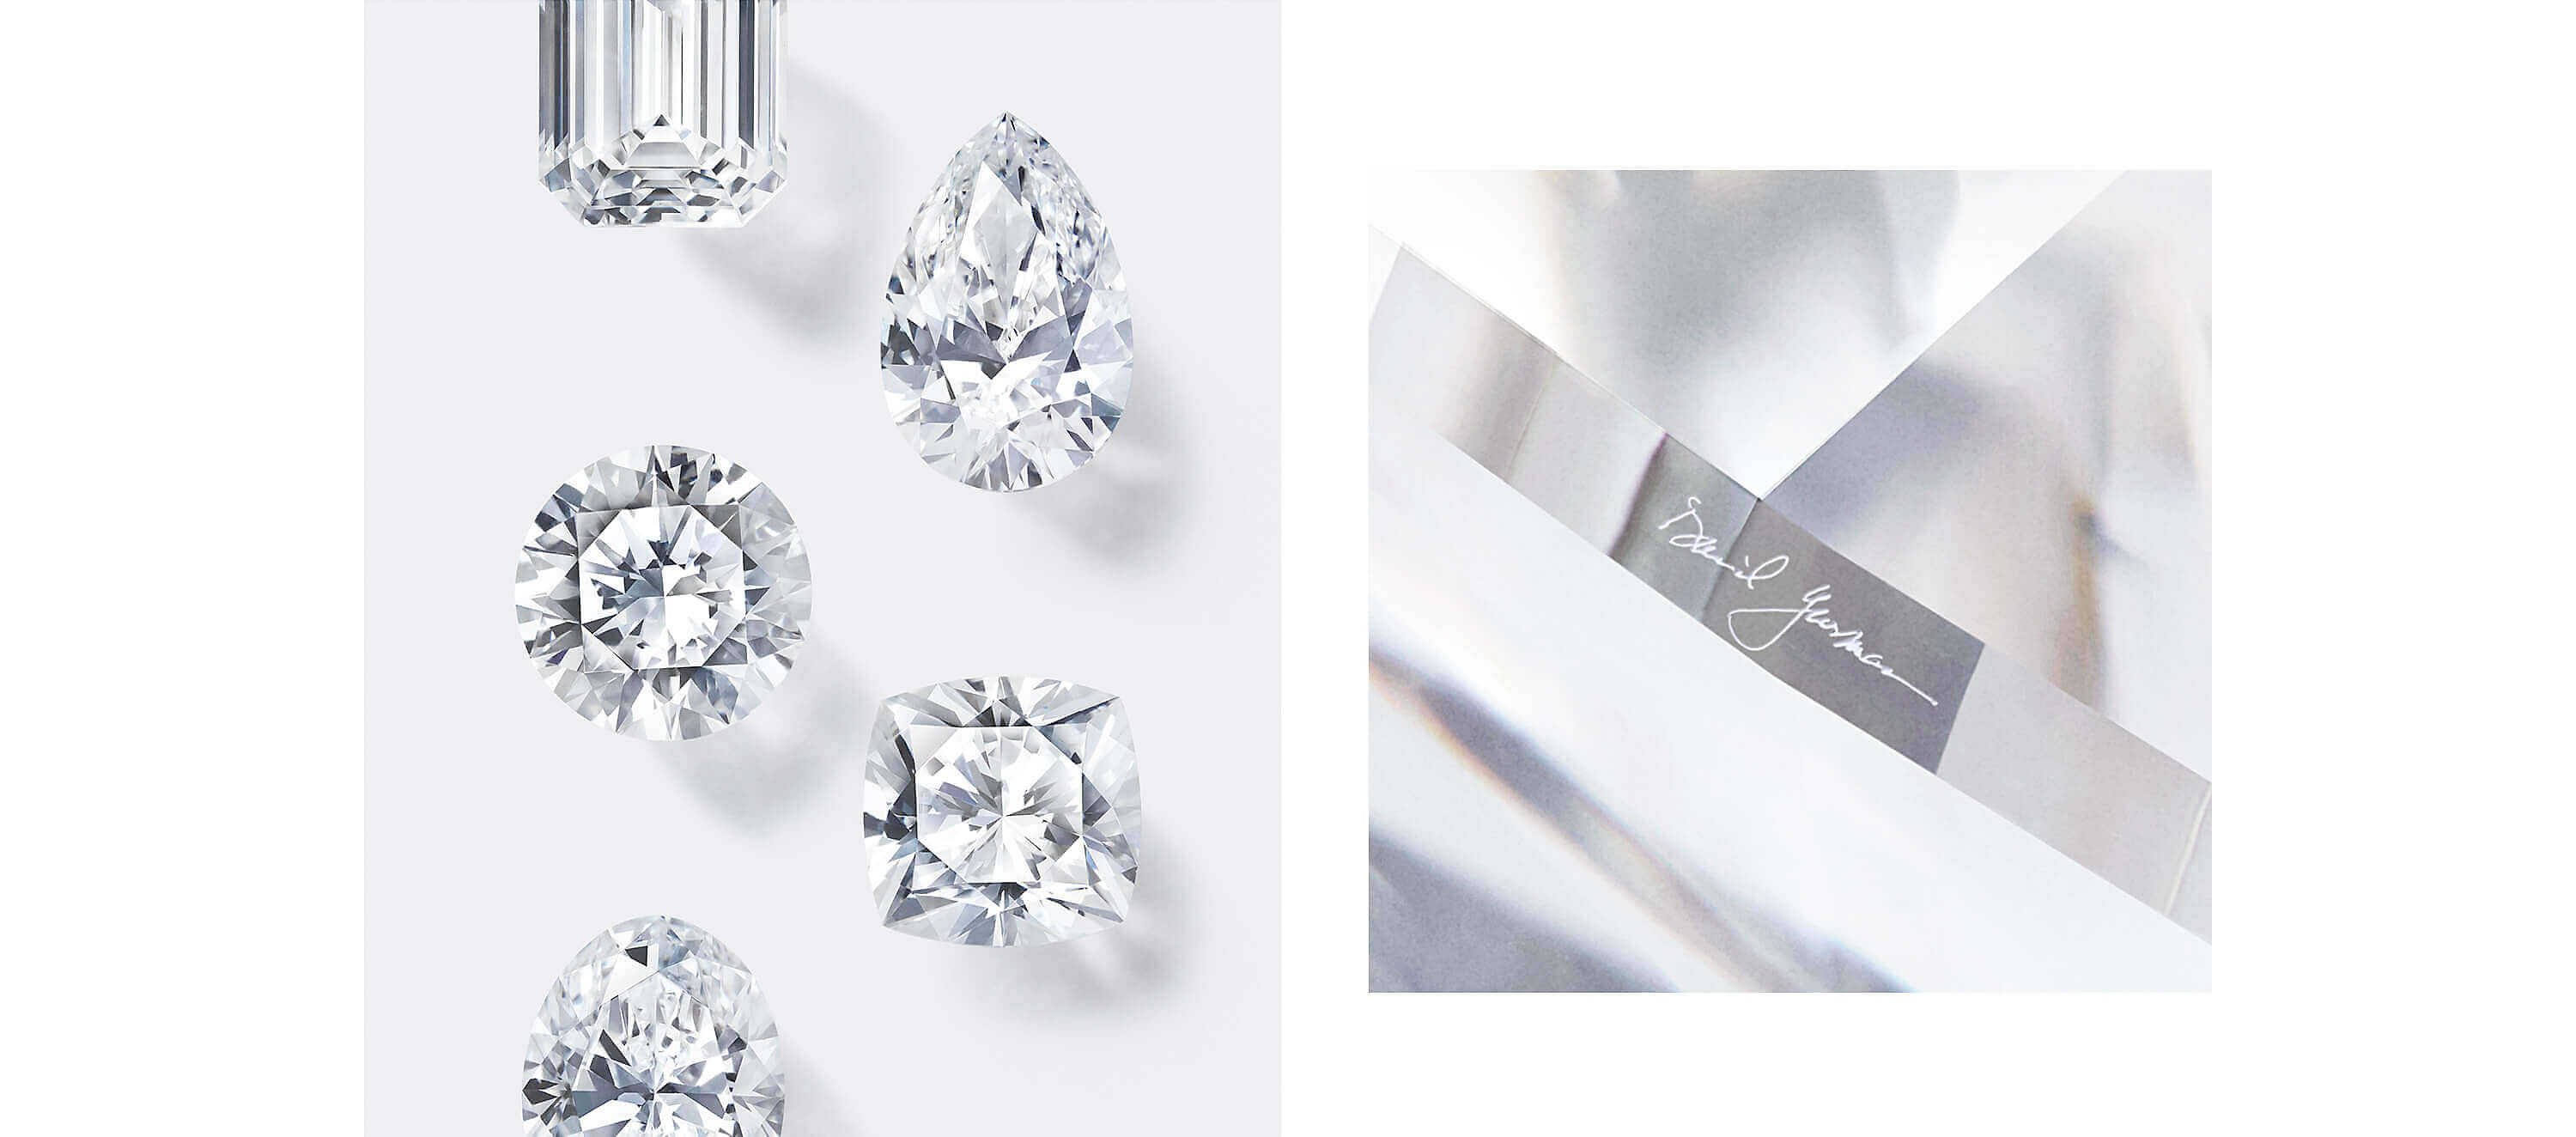 Two photos side by side. One shows loose diamonds in various shapes on a white background. The other is a close-up of a diamond, showing the faceting on one of its sides.